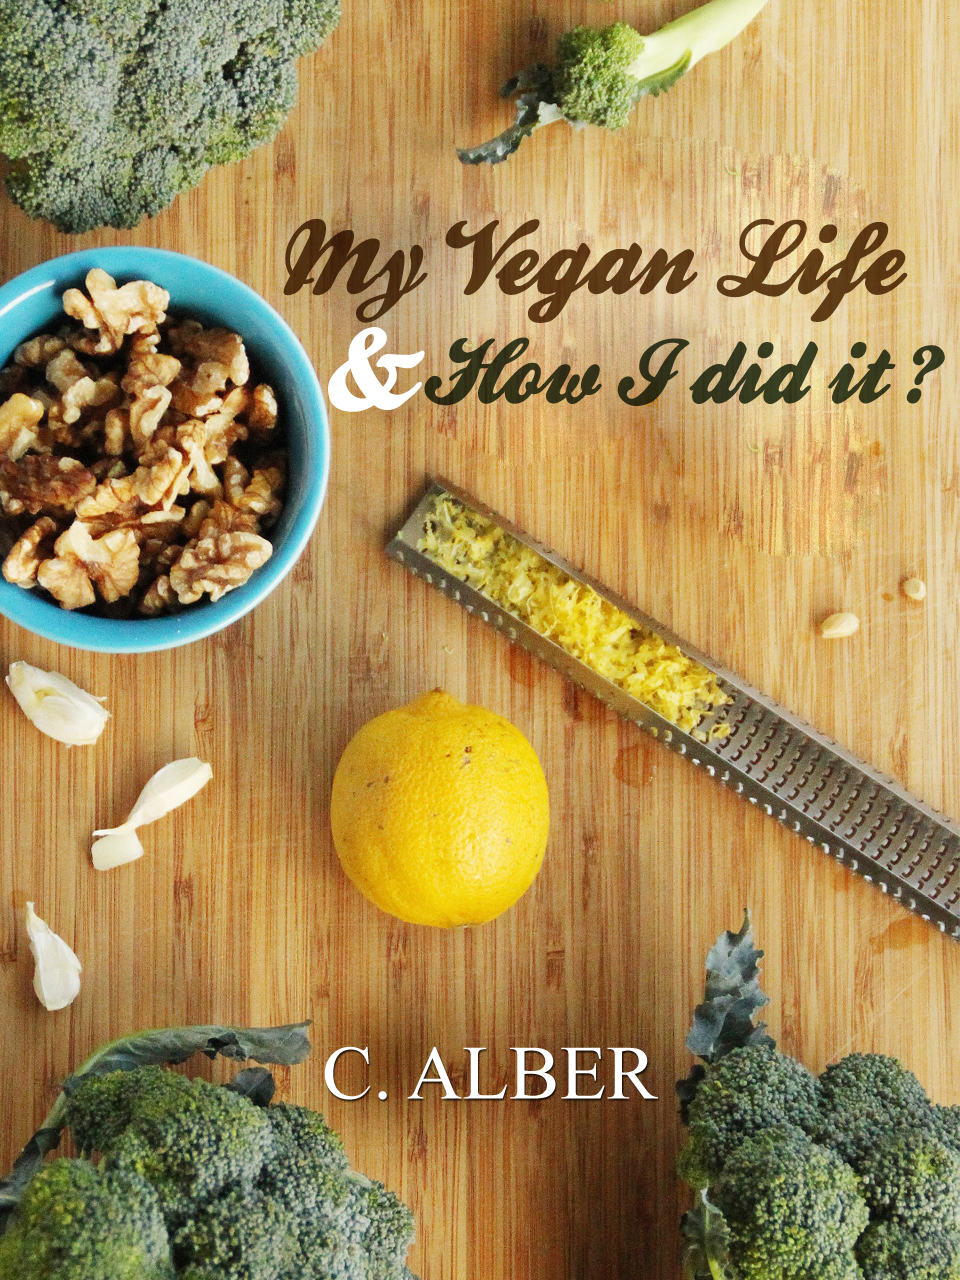 My Vegan Life & How I did it?